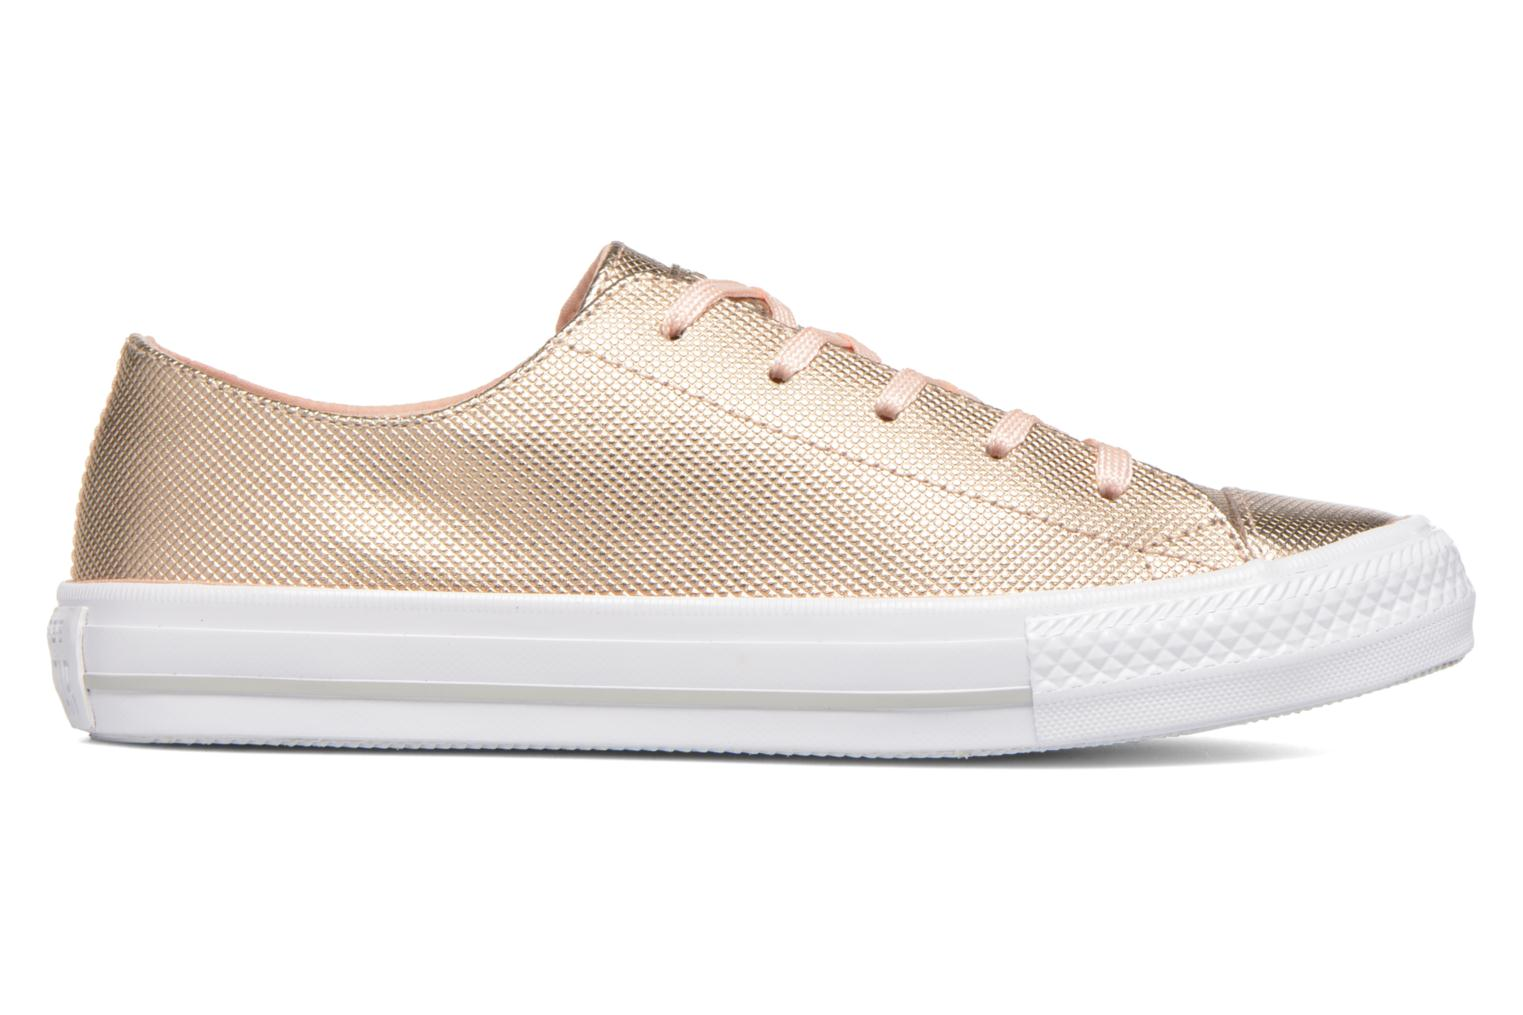 Baskets Converse Ctas Gemma Diamond Foil Leather Ox Rose vue derrière